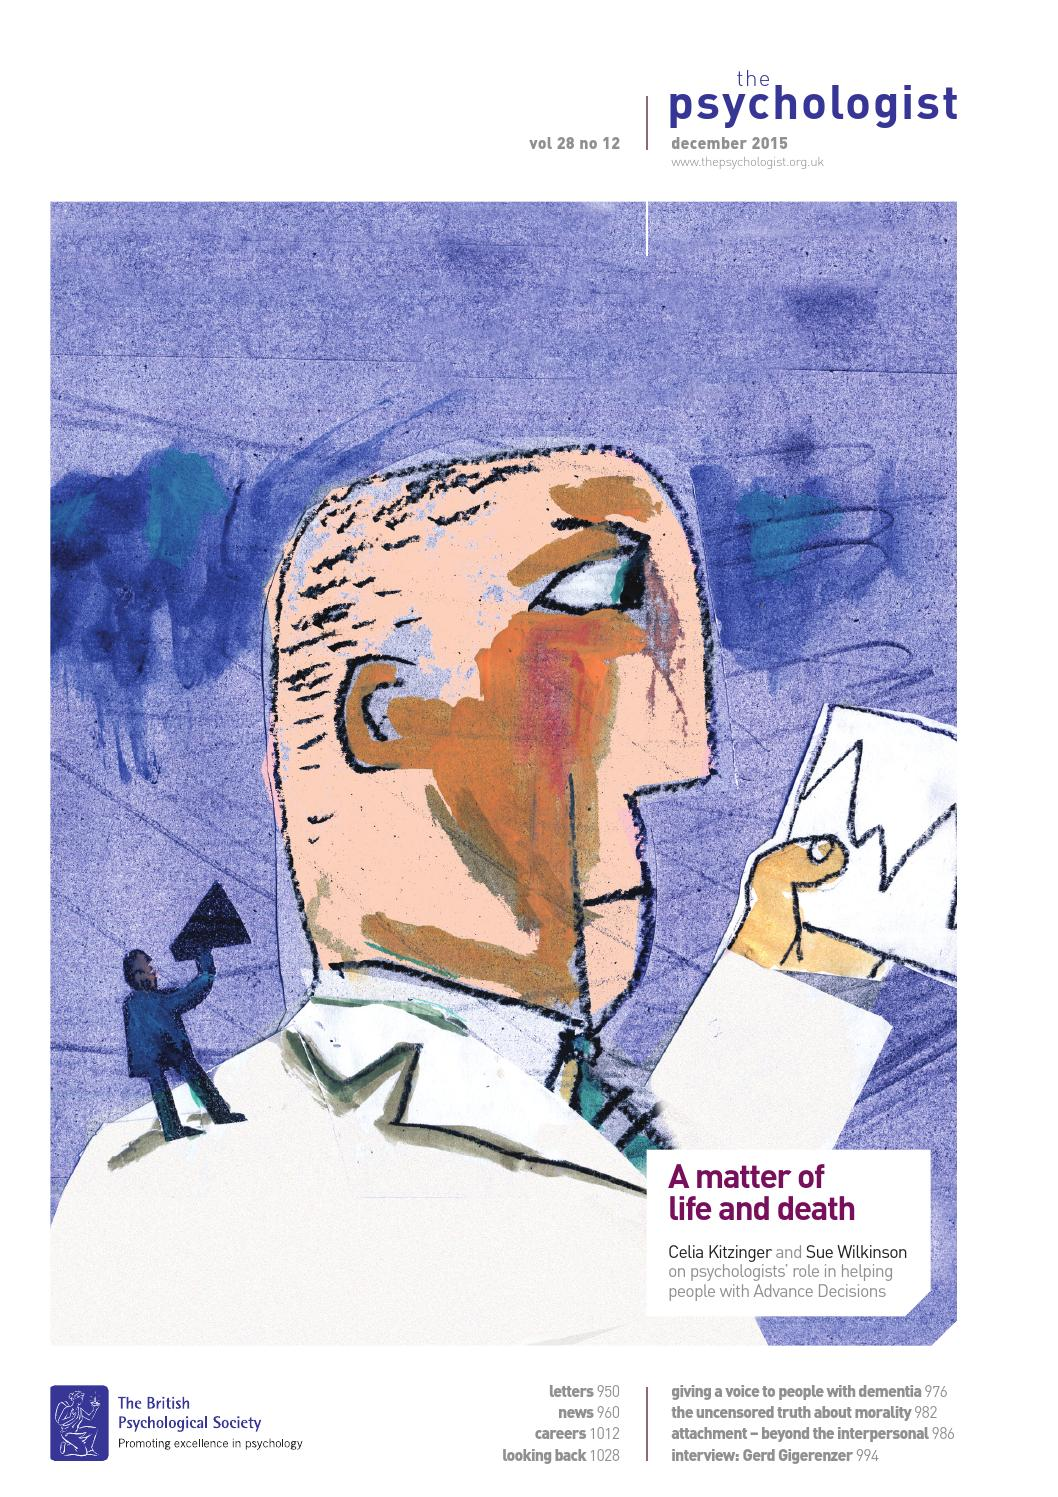 The Psychologist December 2015 By The British Psychological Society